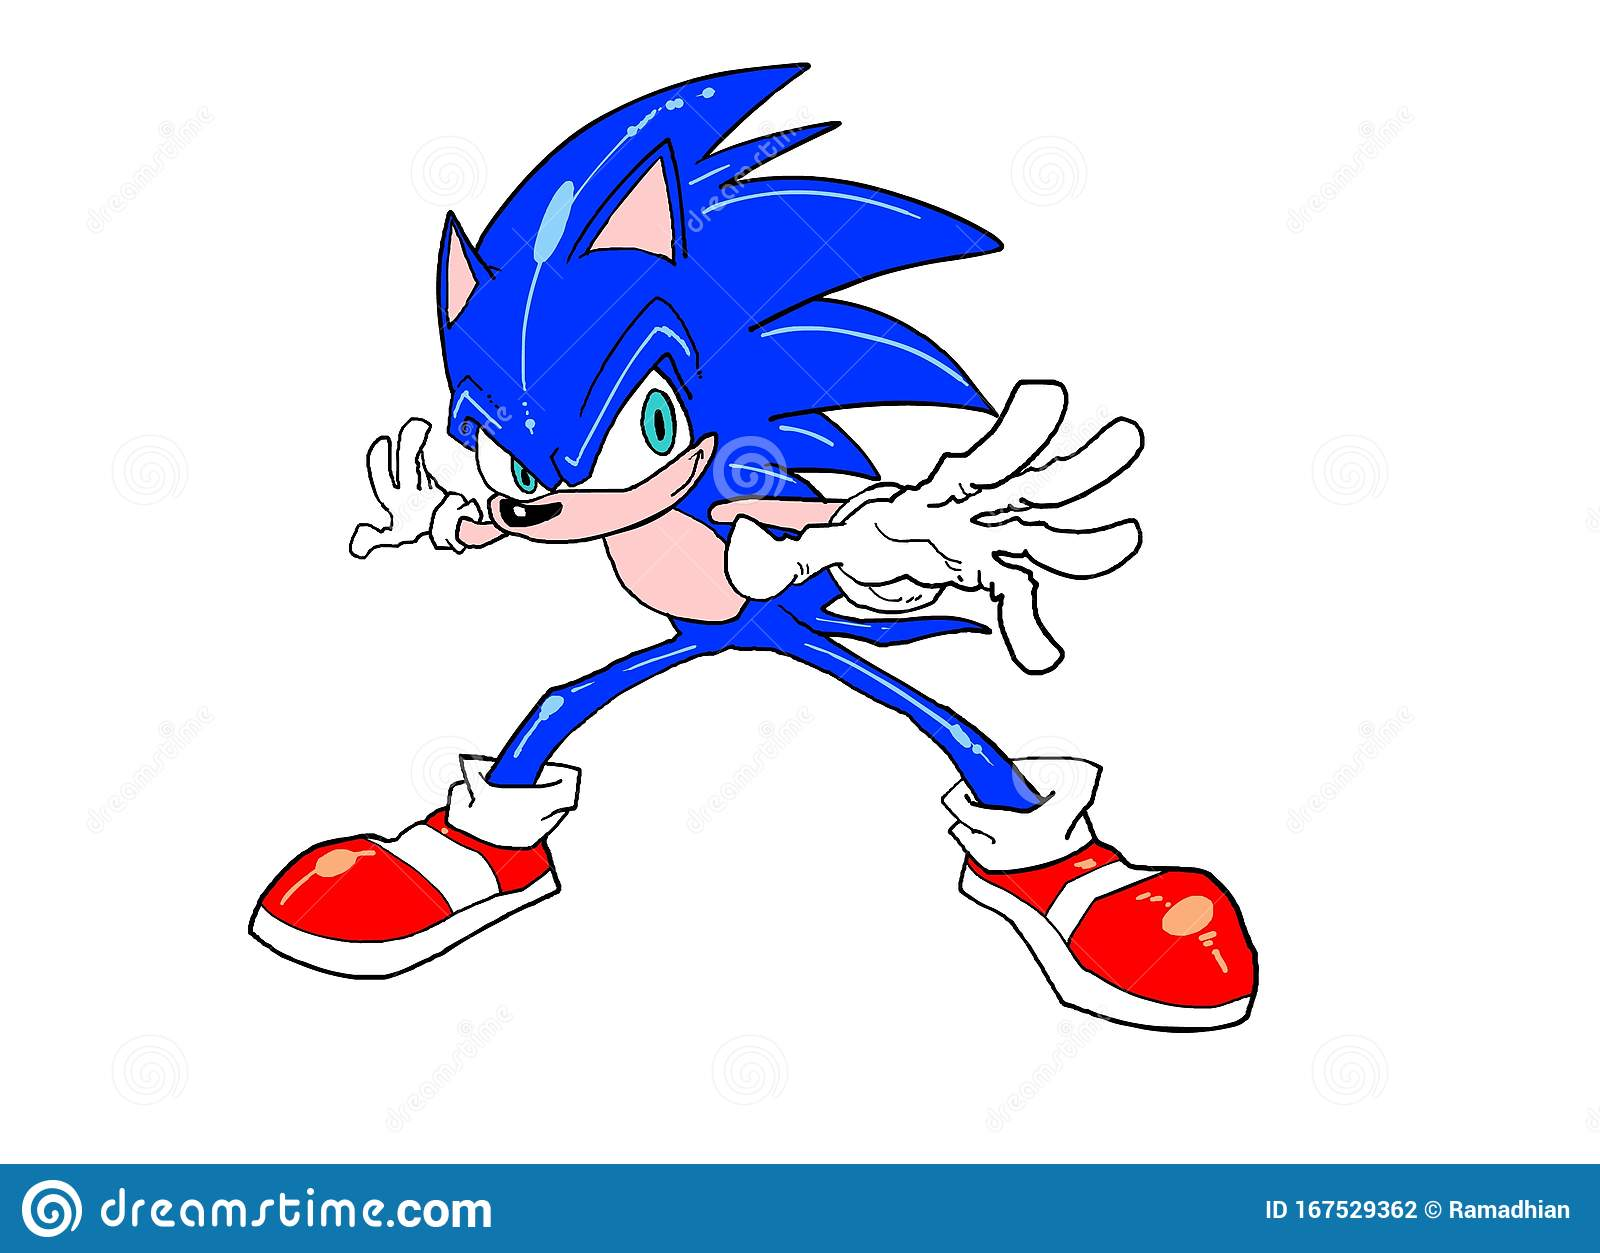 Sonic Cartoon In Standing Pose Ready To Speed Run And Action Stock